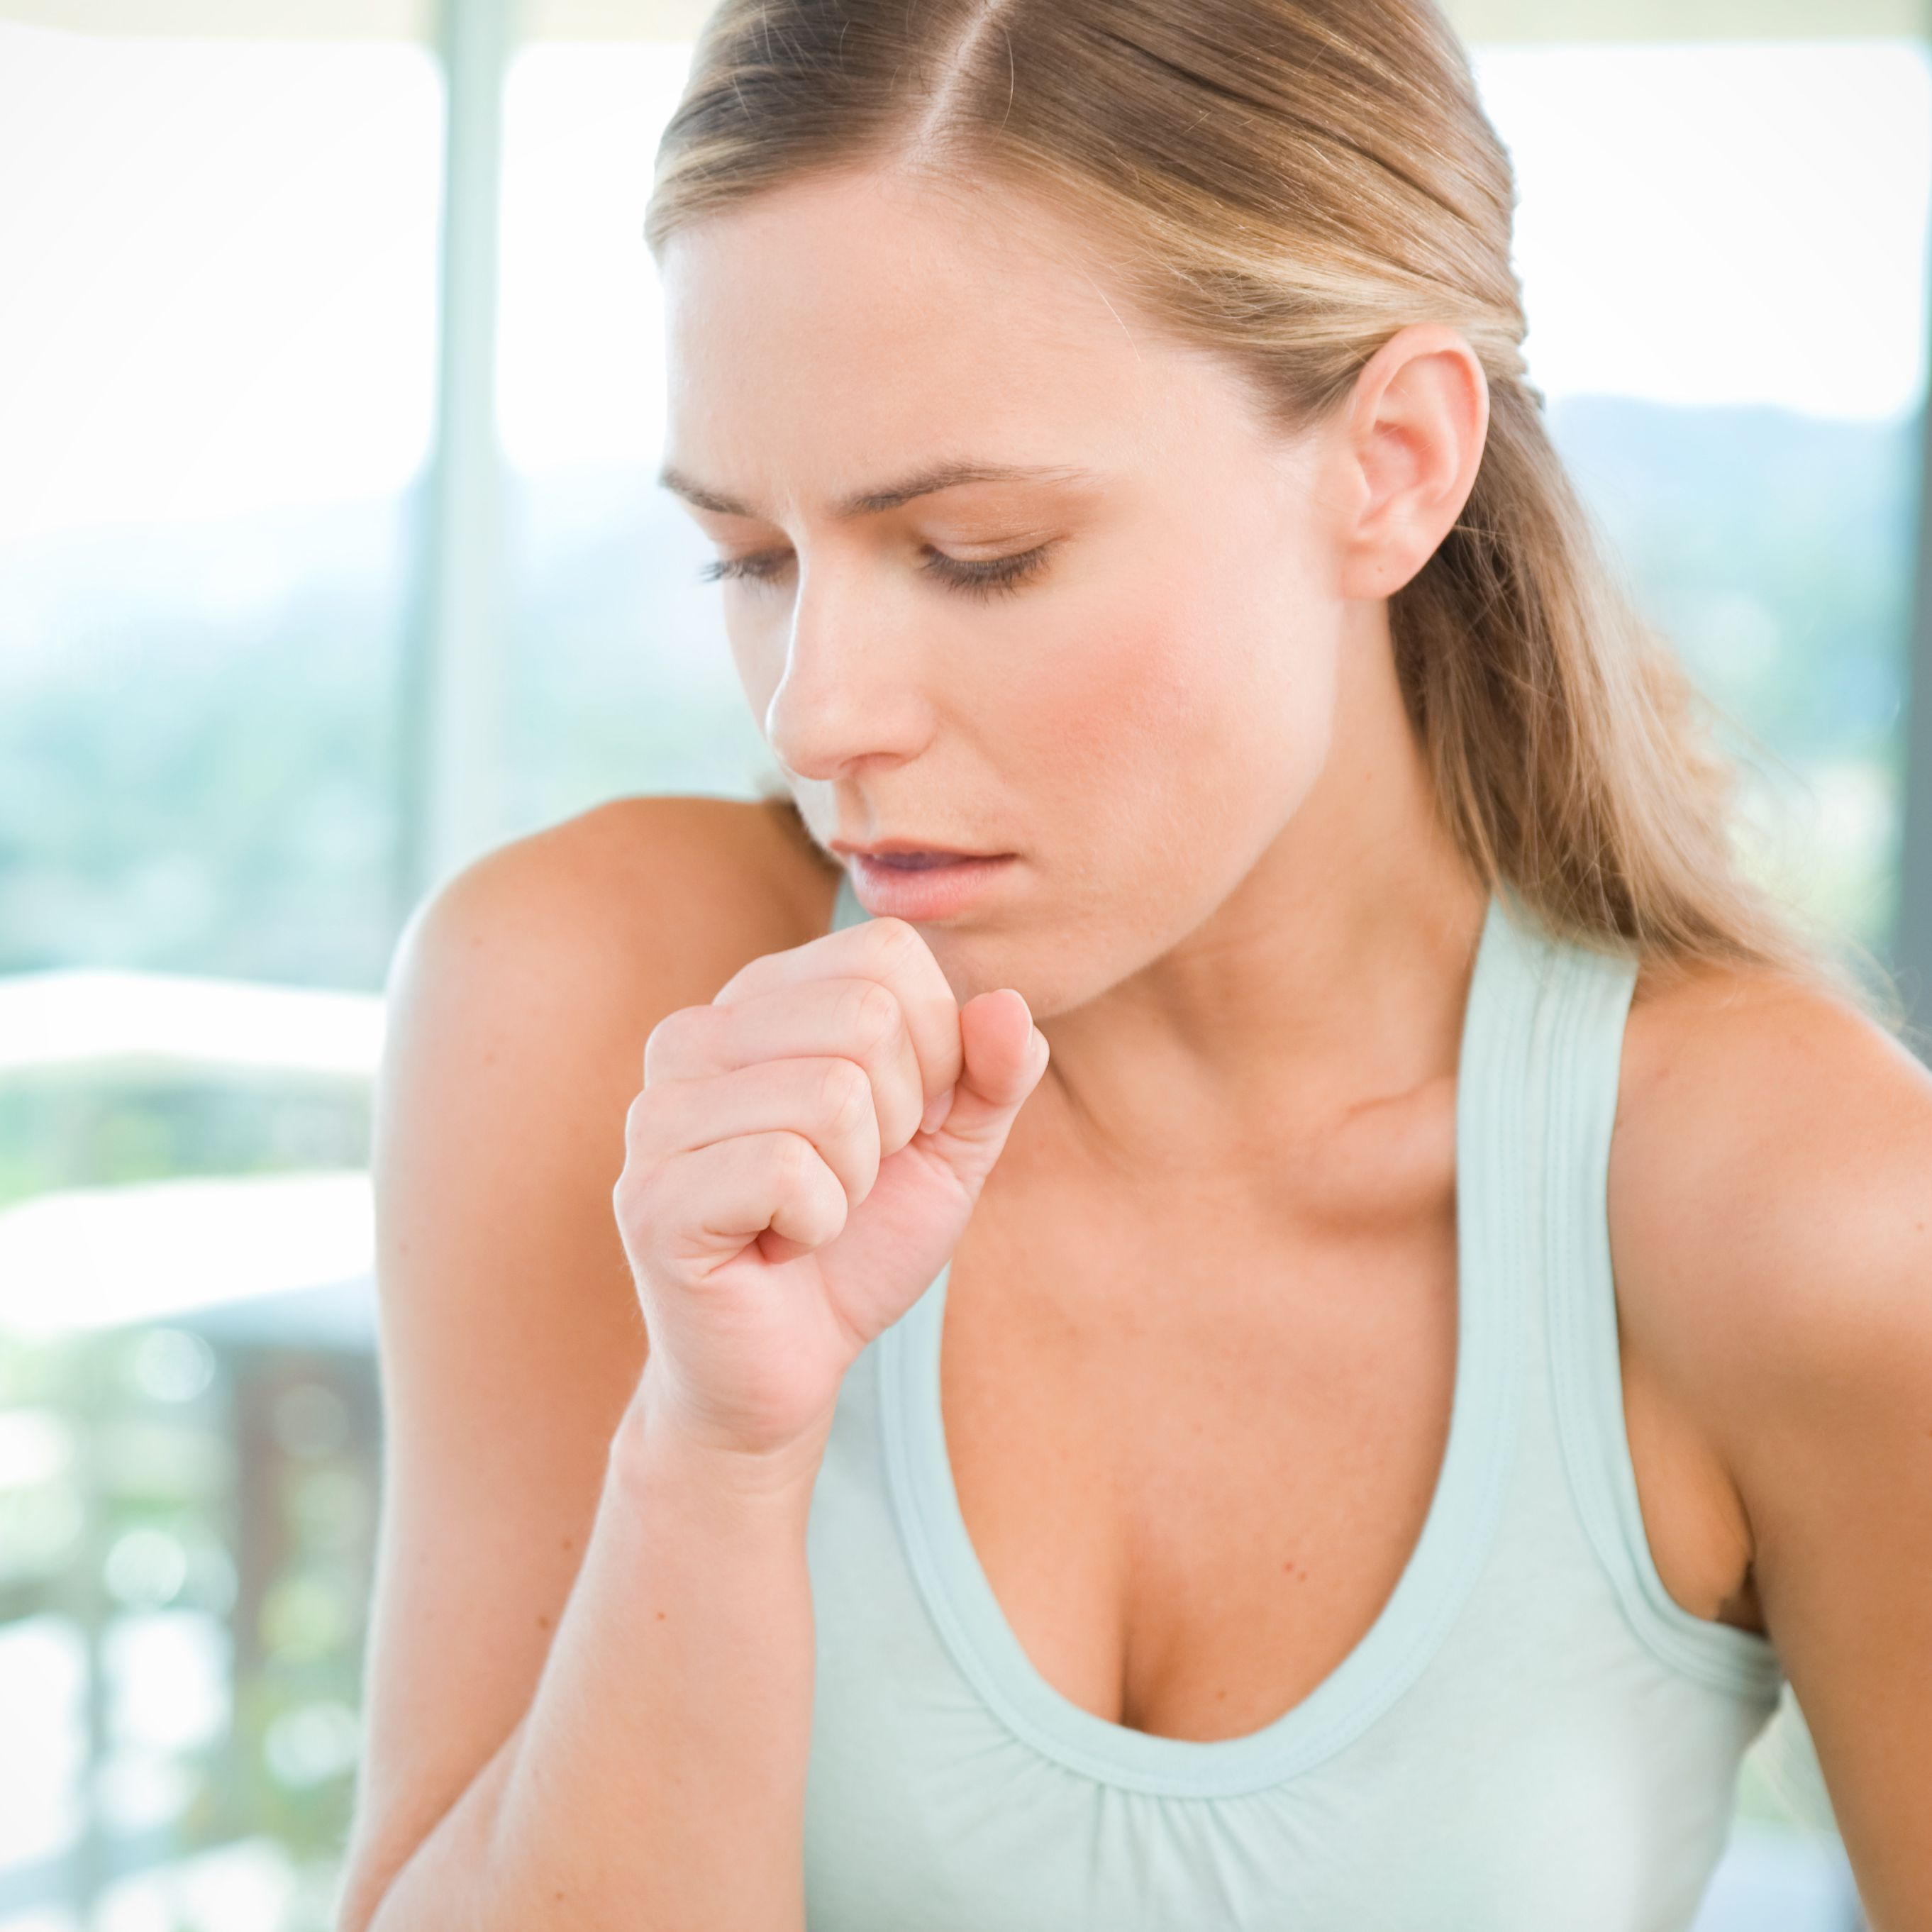 Post-Nasal Drip Treatments Based on 4 Causes